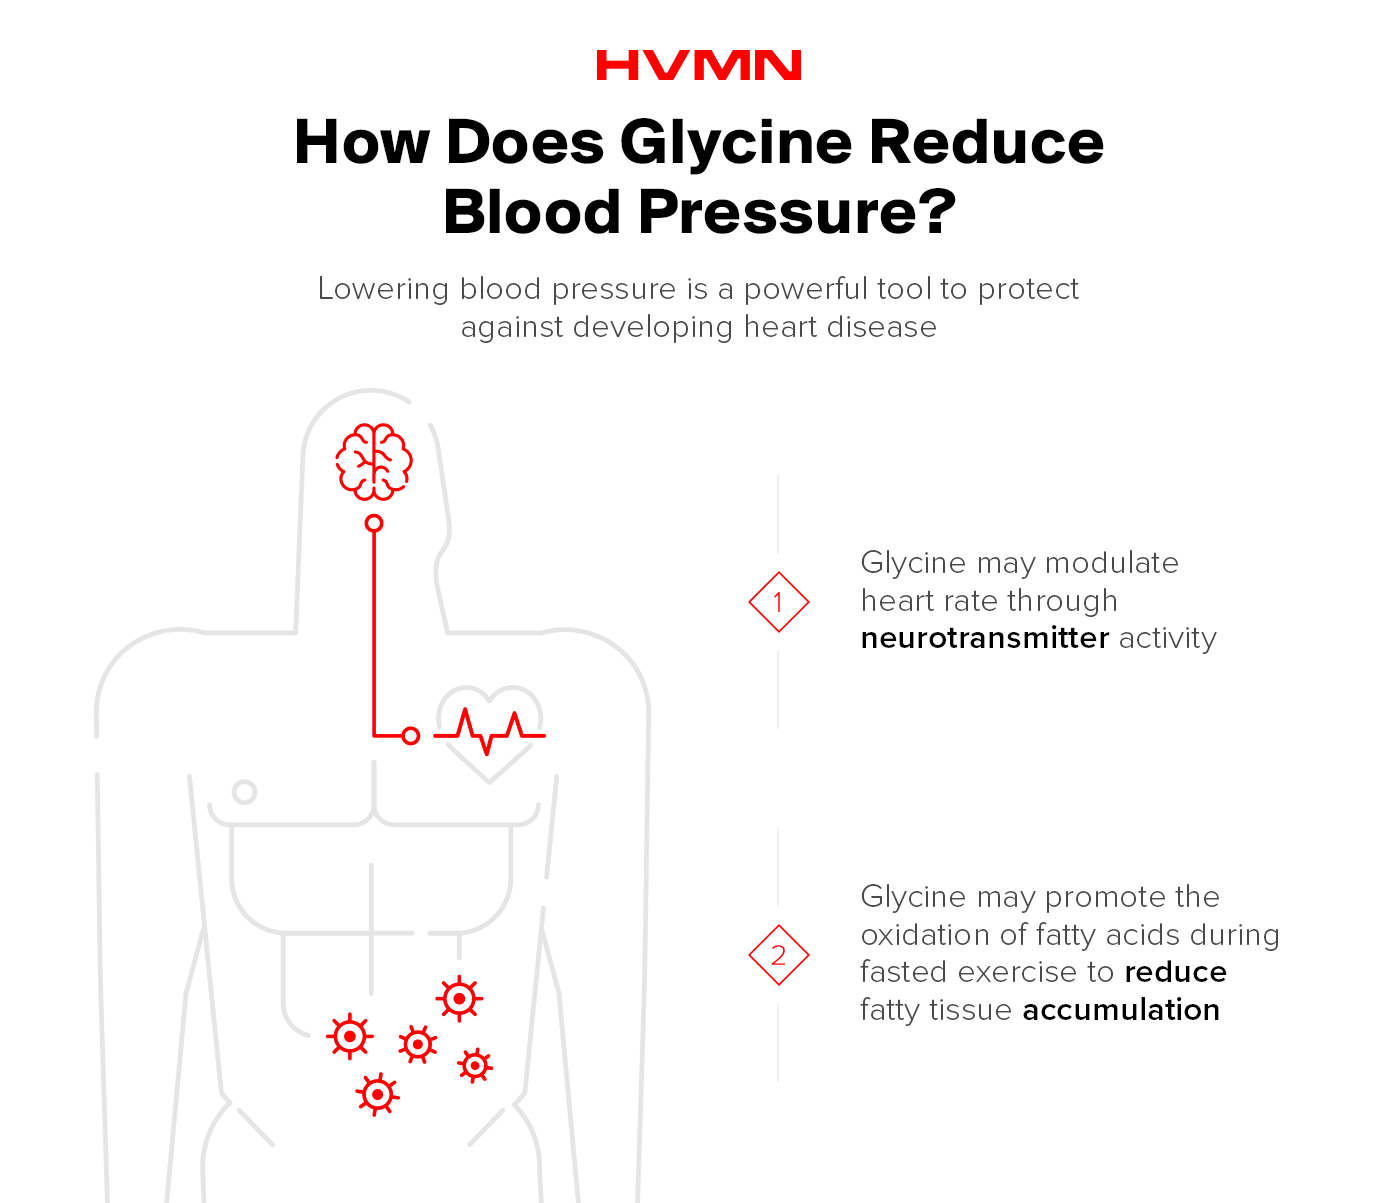 An illustration of the human body with a line connecting the heart and the brain, showing how glycine can reduce blood pressure.